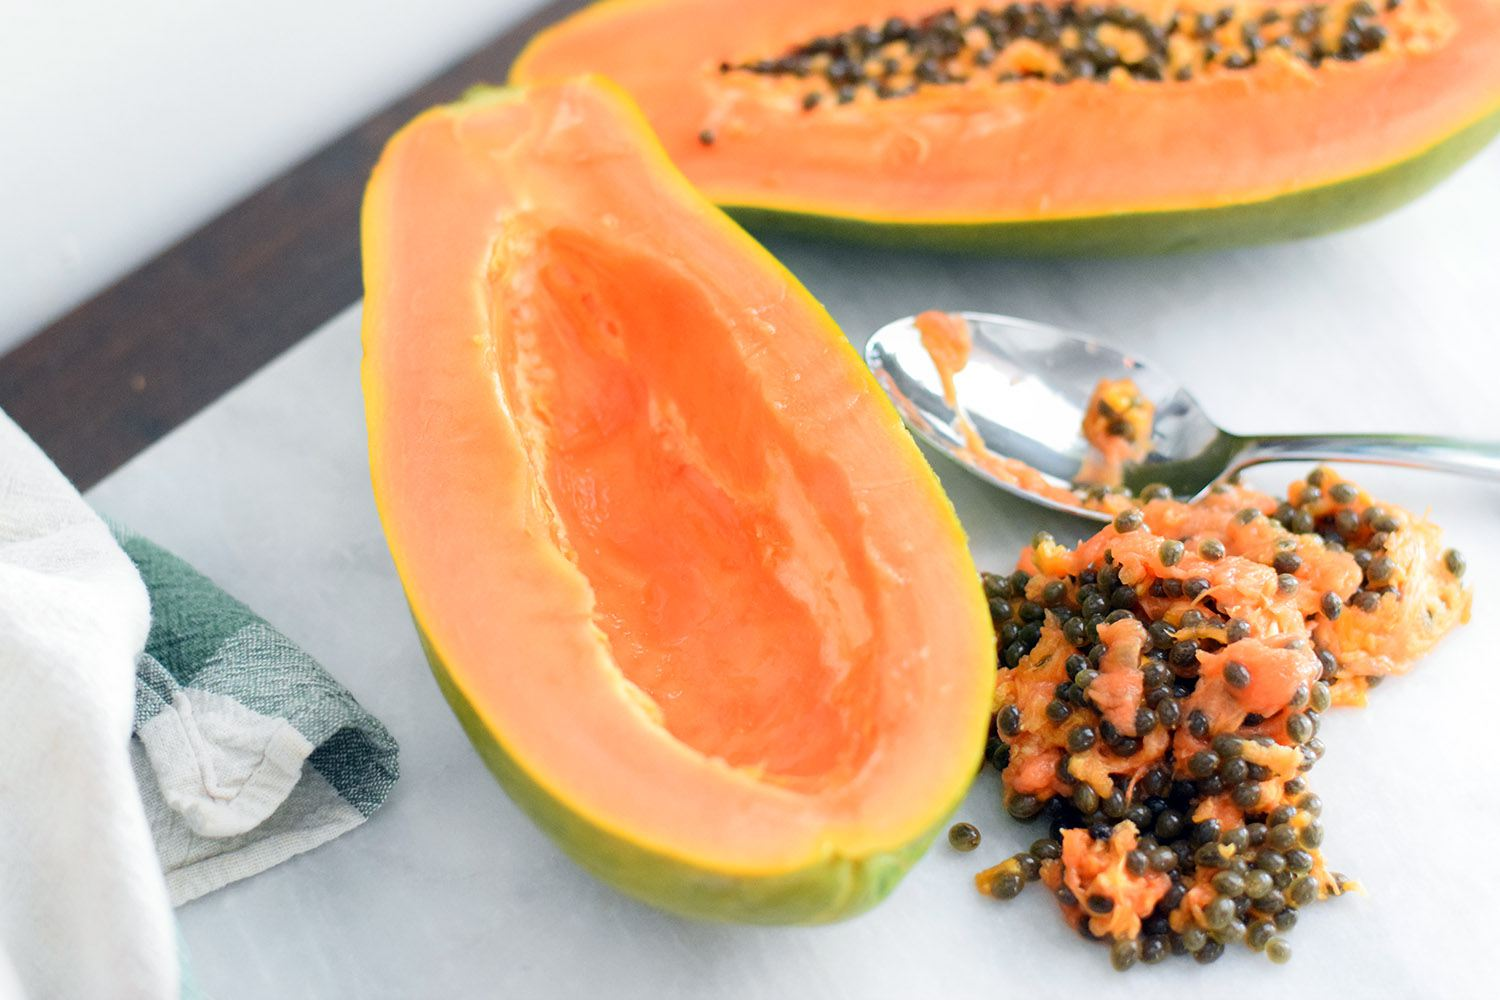 Scrape papaya seeds out with a spoon